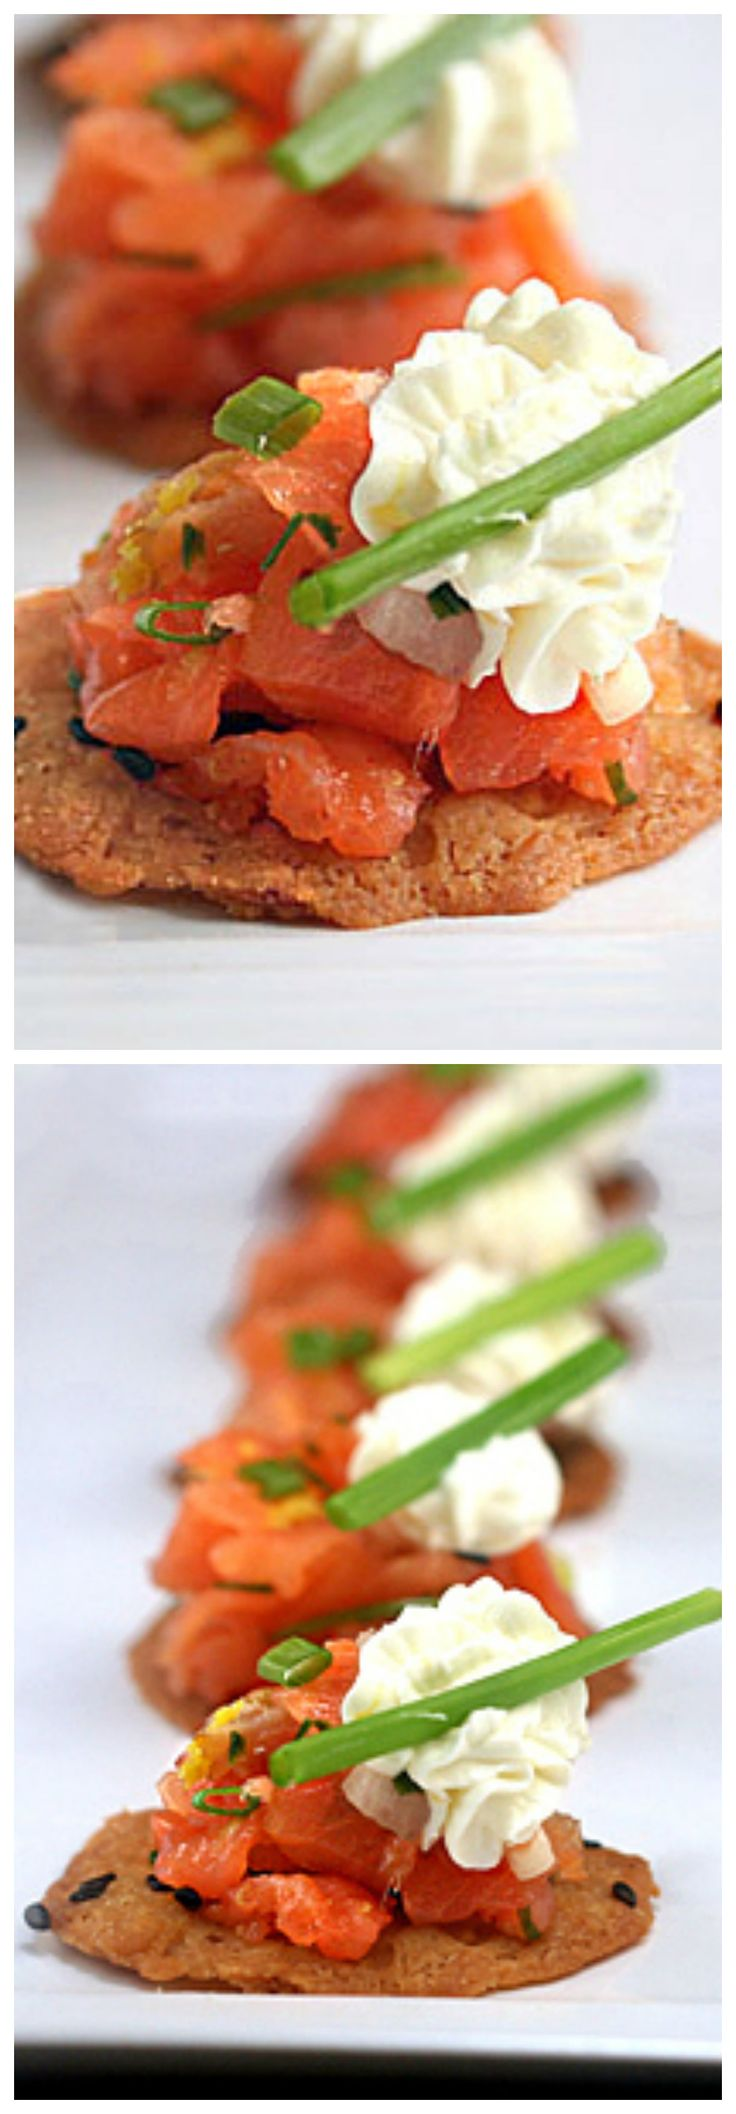 Smoked Salmon and Cream Cheese  Hors d'Oeuvres from the great chef, Thomas Keller.  An easy and delicious treat to serve on New Years Eve!